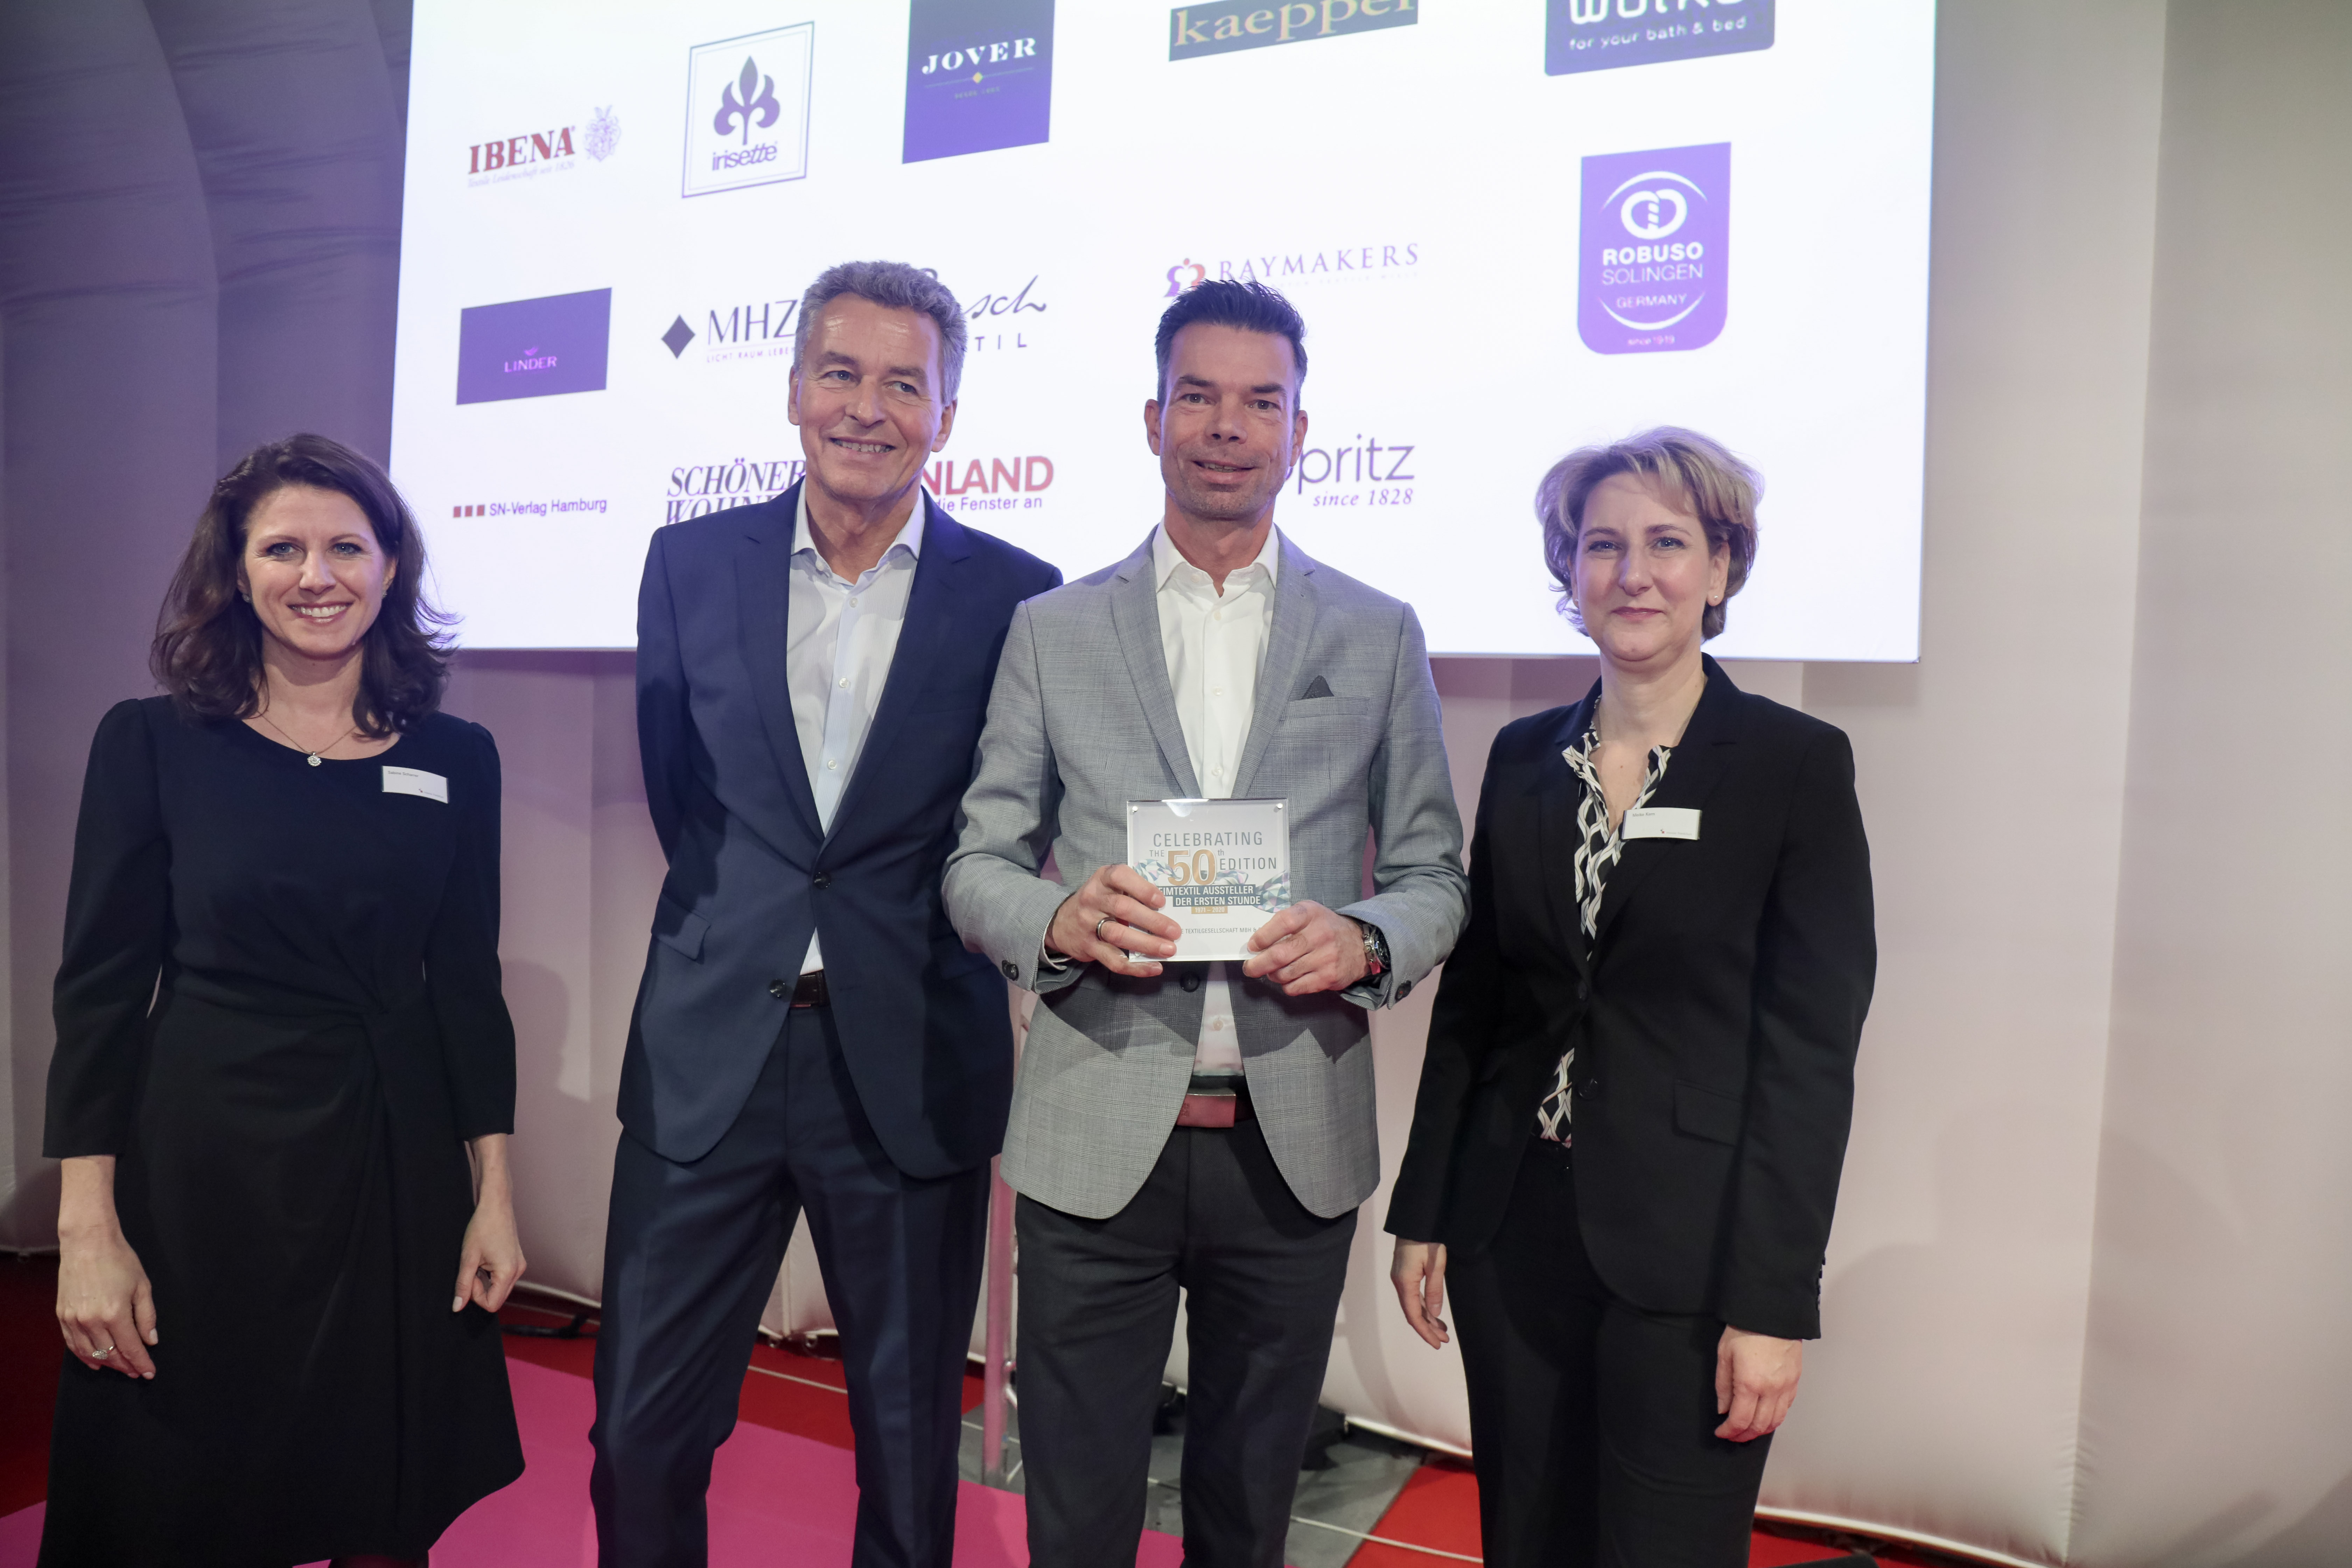 Awards ceremony for exhibitors from the very beginning / Kleine Wolke Textilgesellschaft mbH & Co. KG